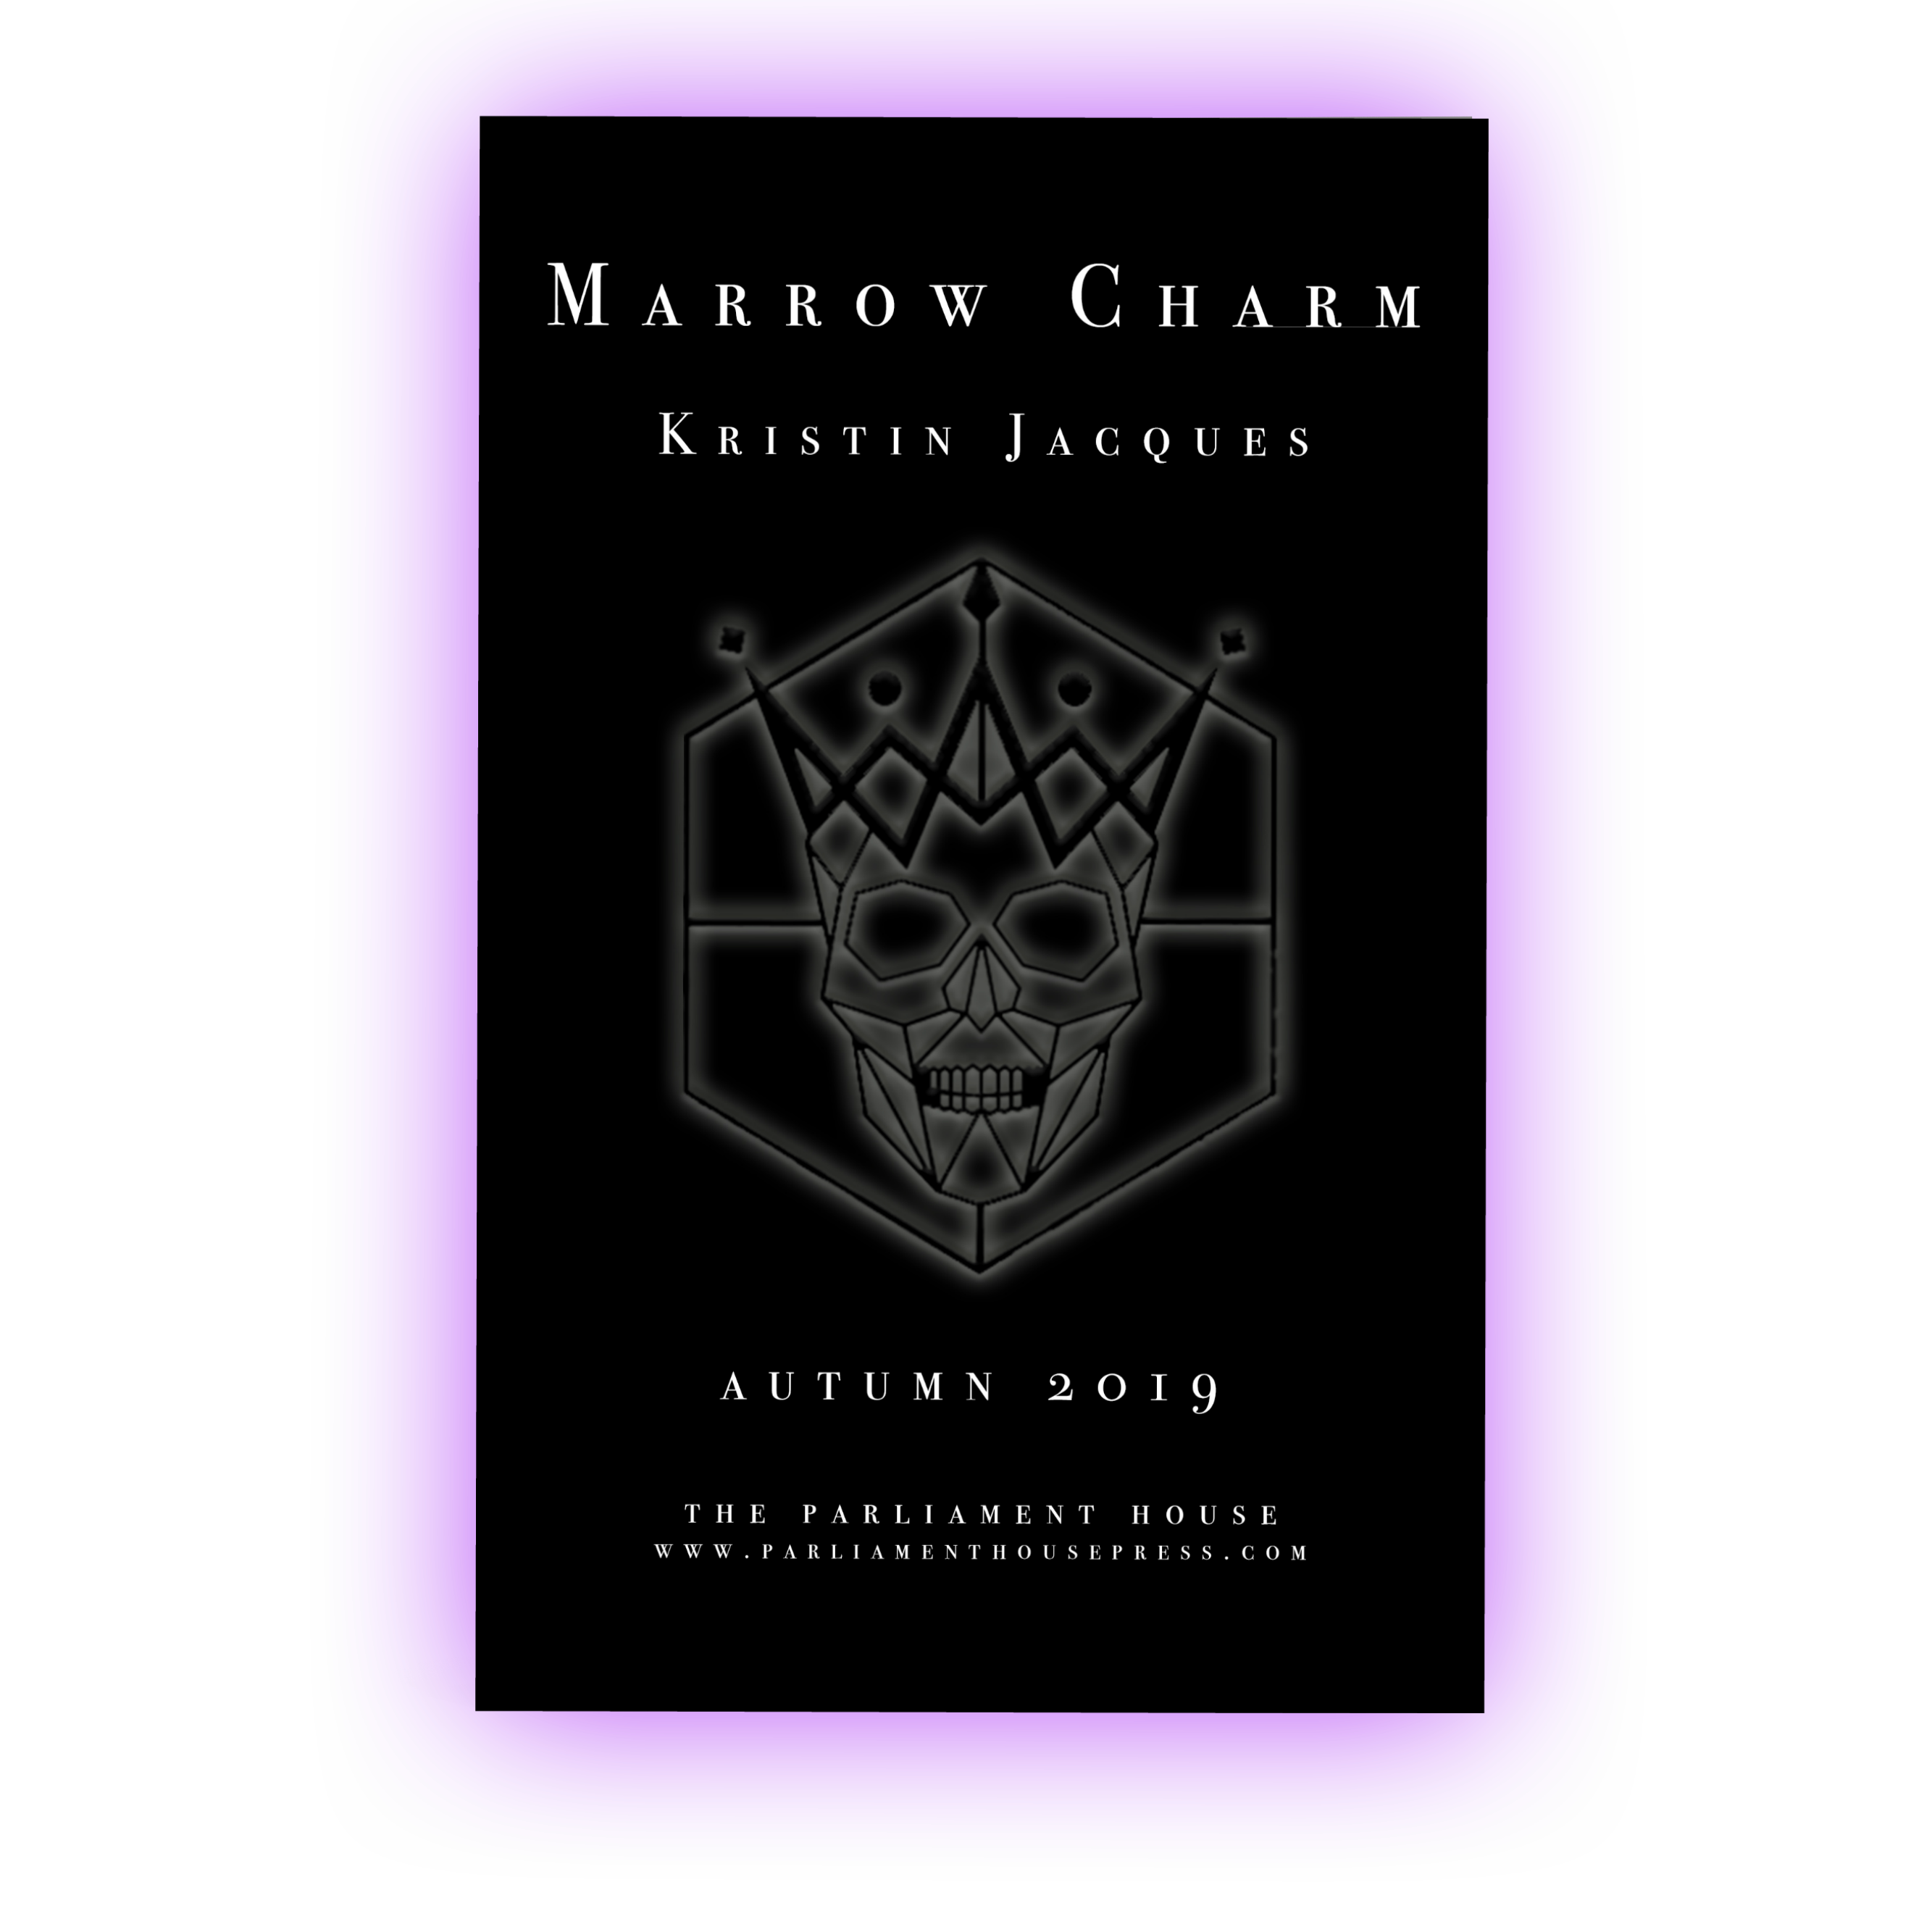 Read Marrow Charm by Kristin Jacques | www.kristinjacques.com